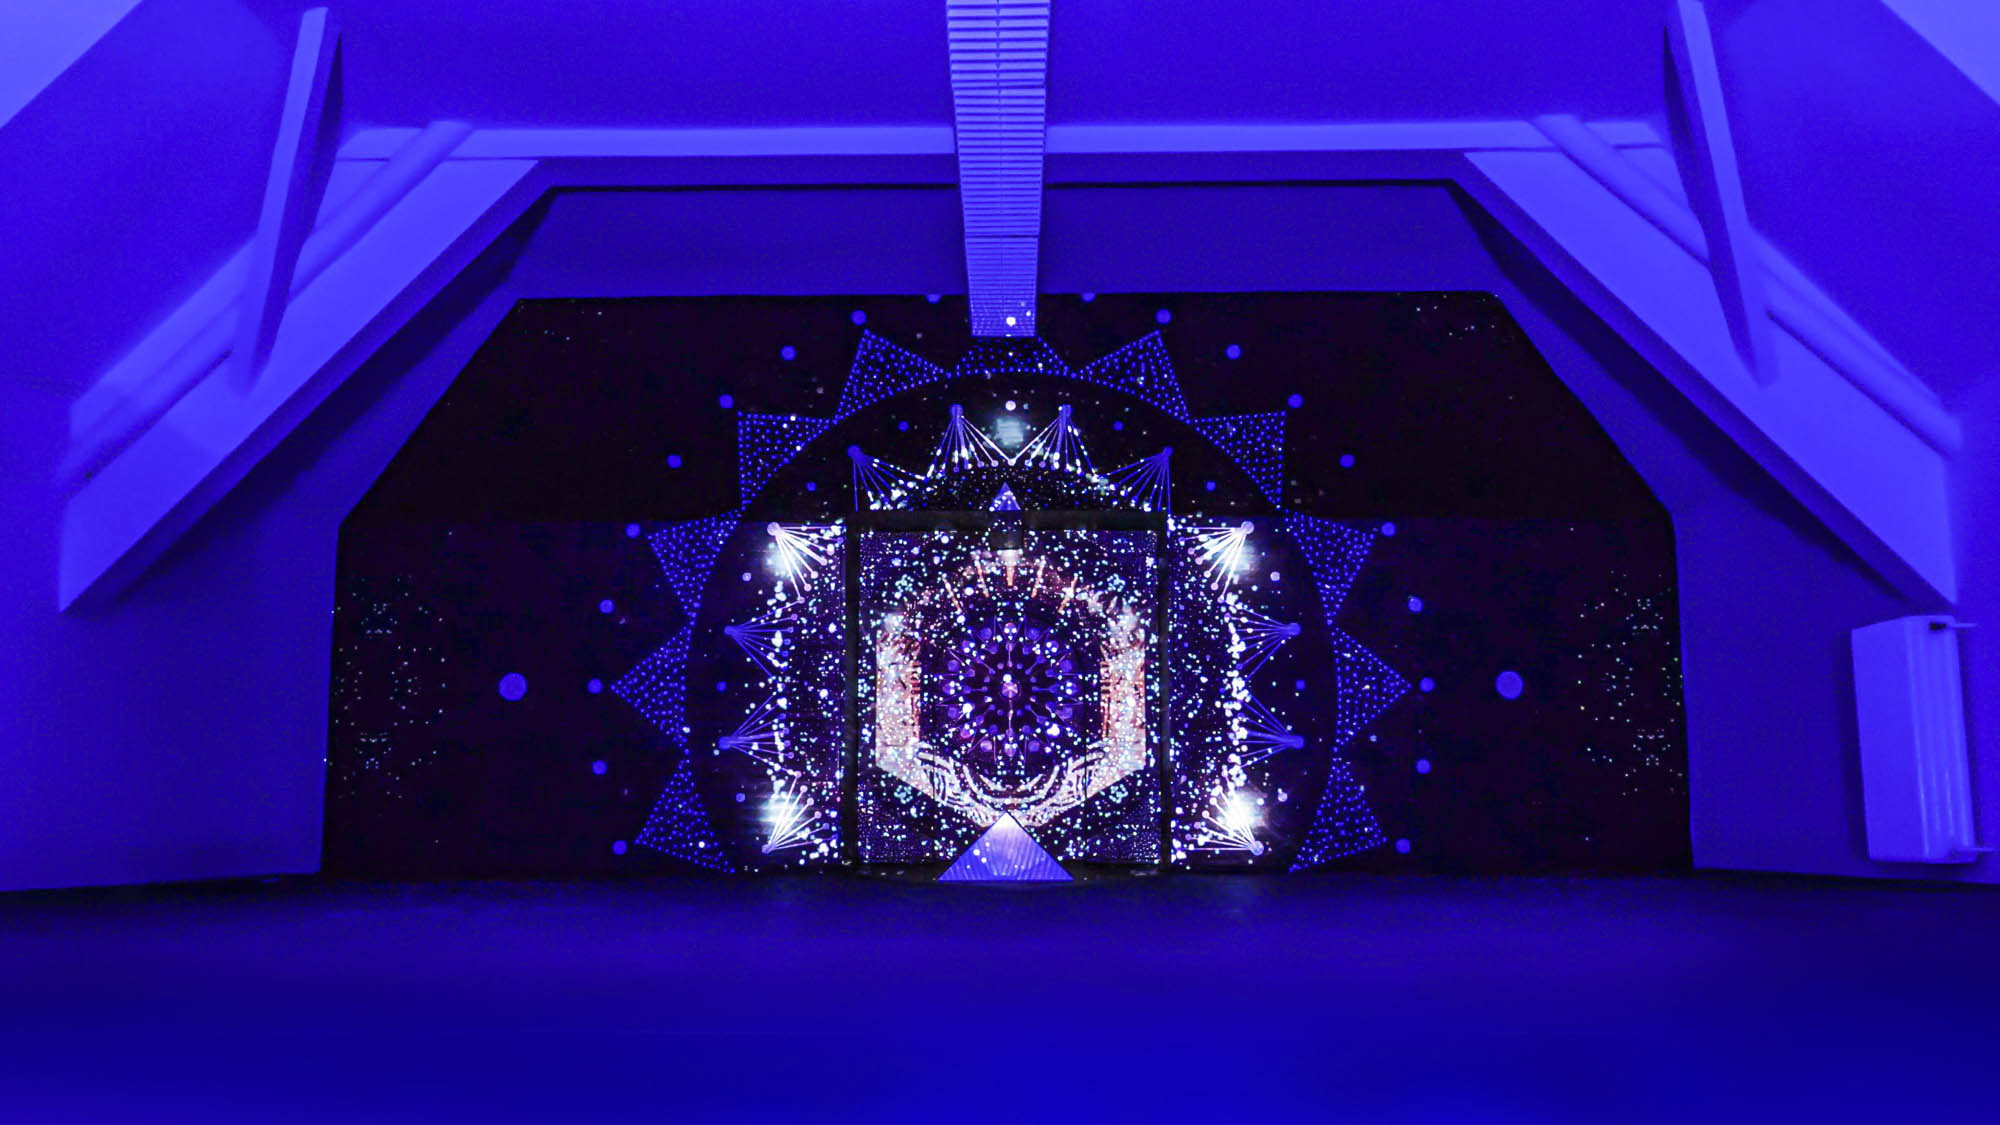 Image of a video art installation combined with a mural painting. Mandala geometric design with projection mapping art.